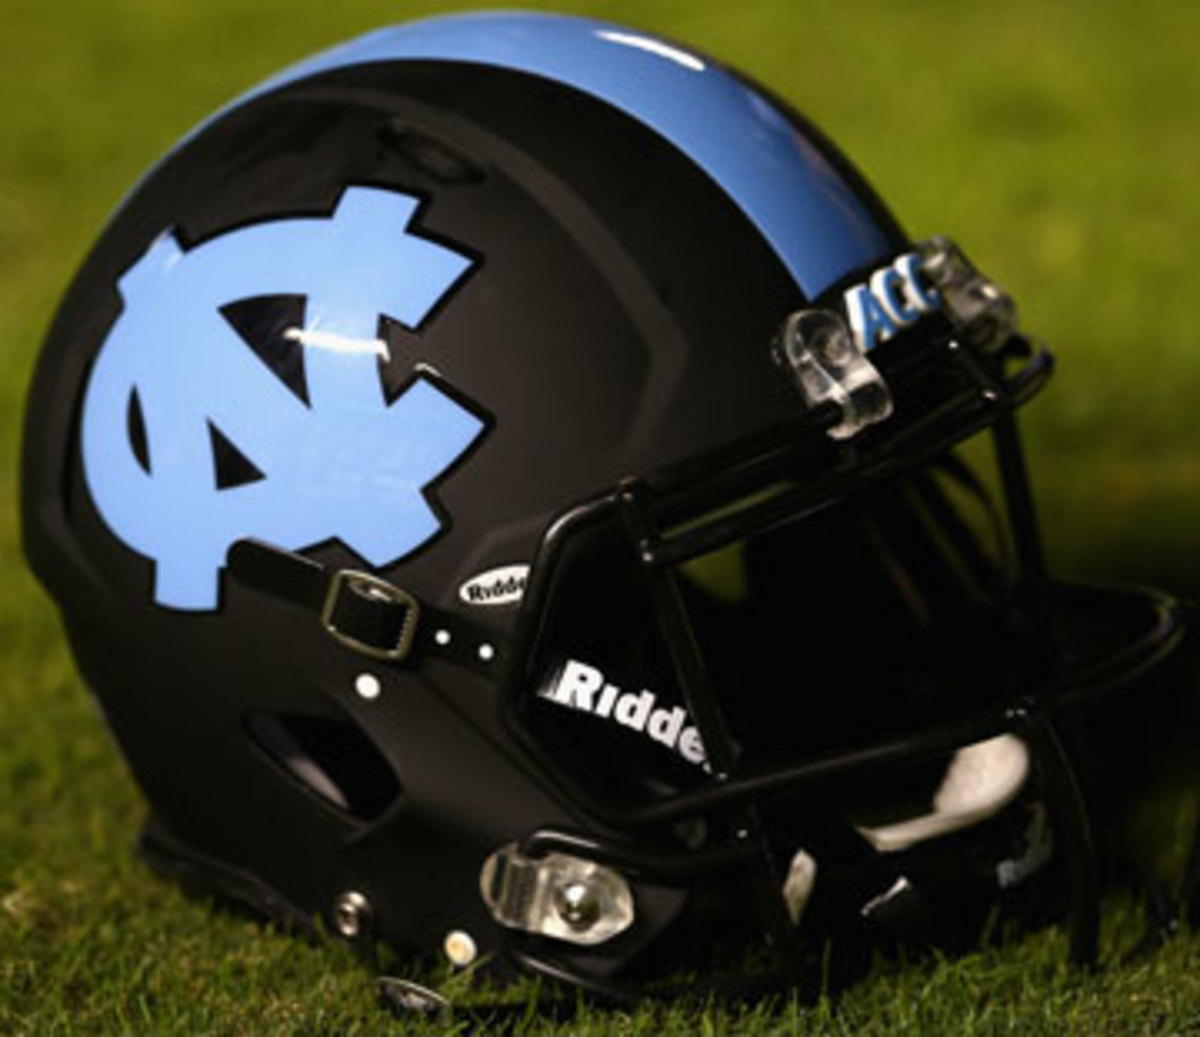 For nearly a decade, North Carolina's helmets have been used to study impact hits to the head. (Streeter Lecka/Getty Images)